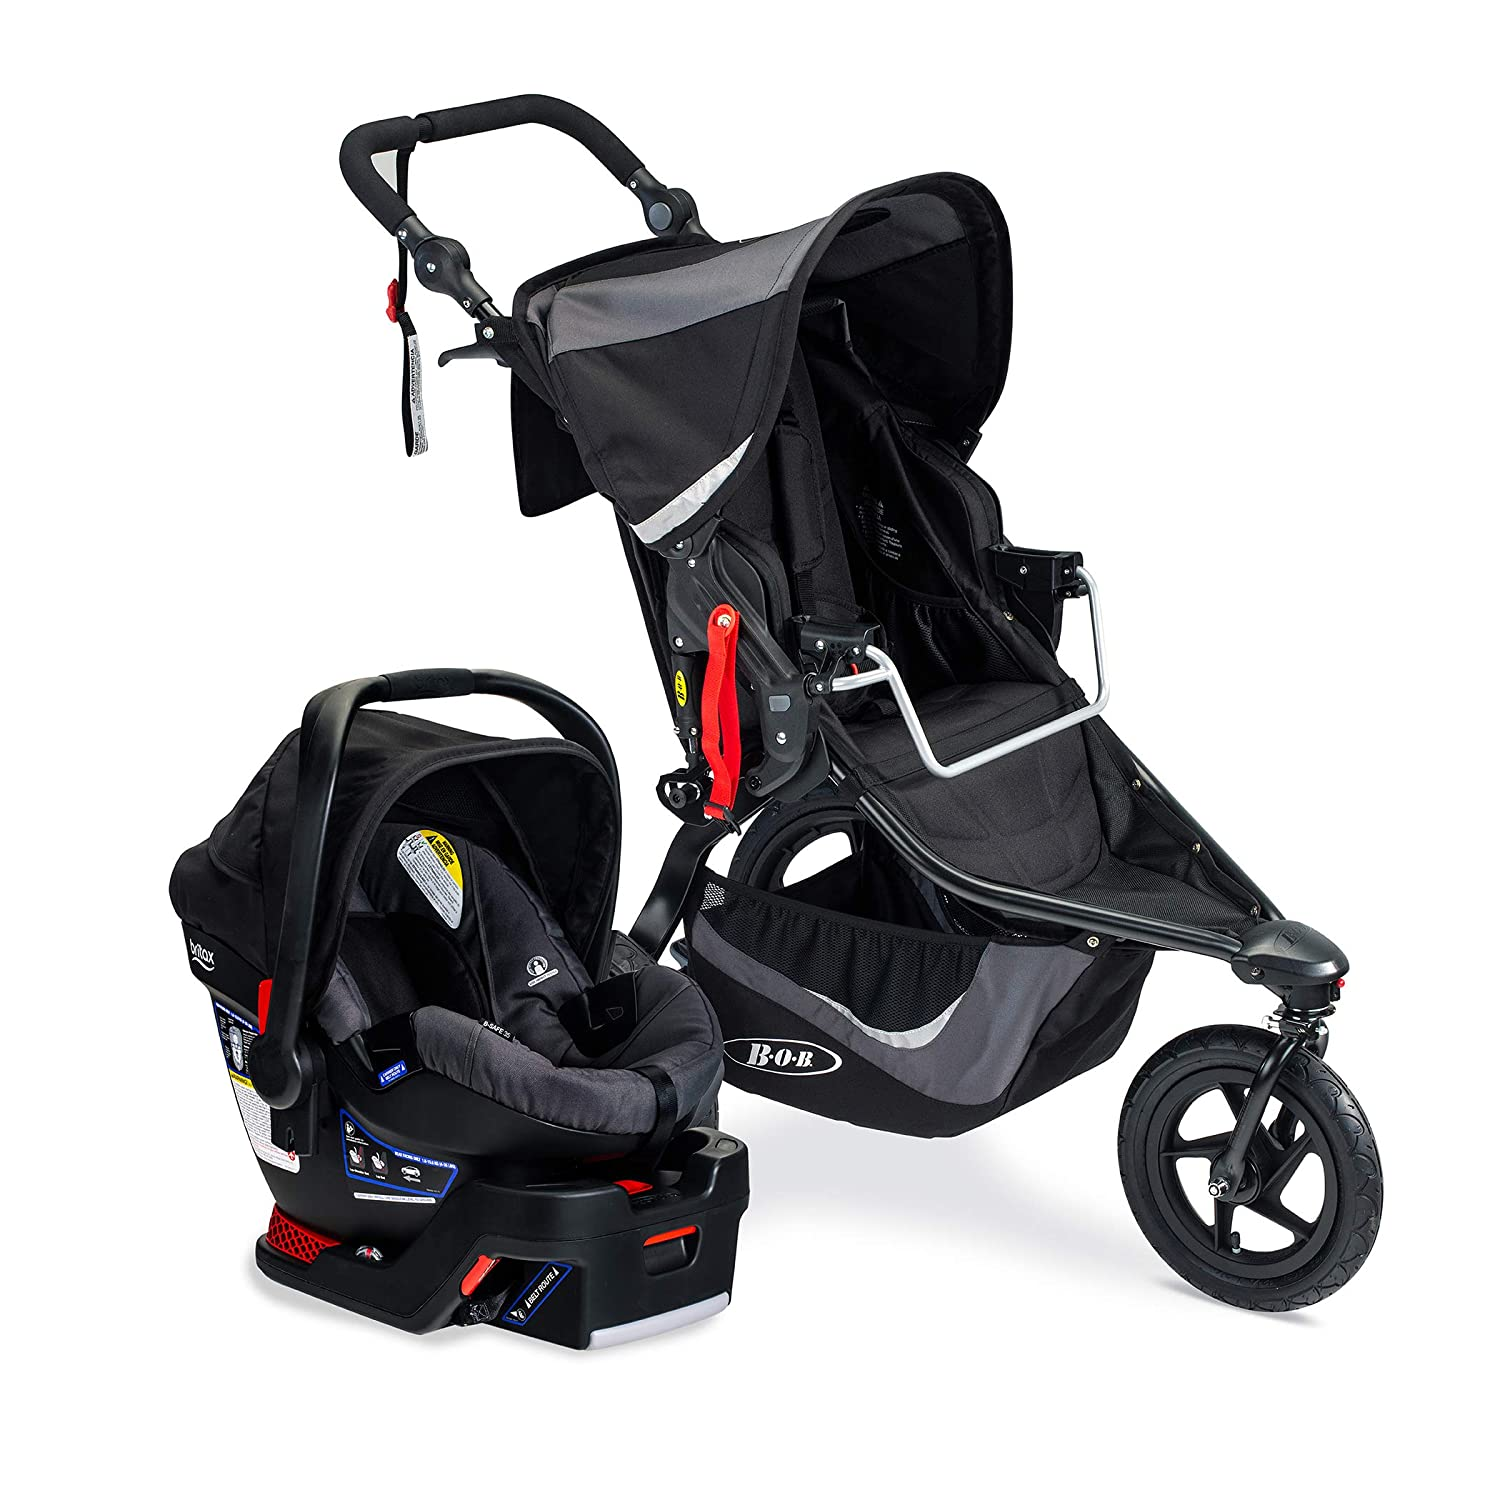 BOB Gear Revolution Flex 3.0 Travel System with Britax B-Safe 35 Infant Car Seat – Birth to 75 pounds, Graphite Black